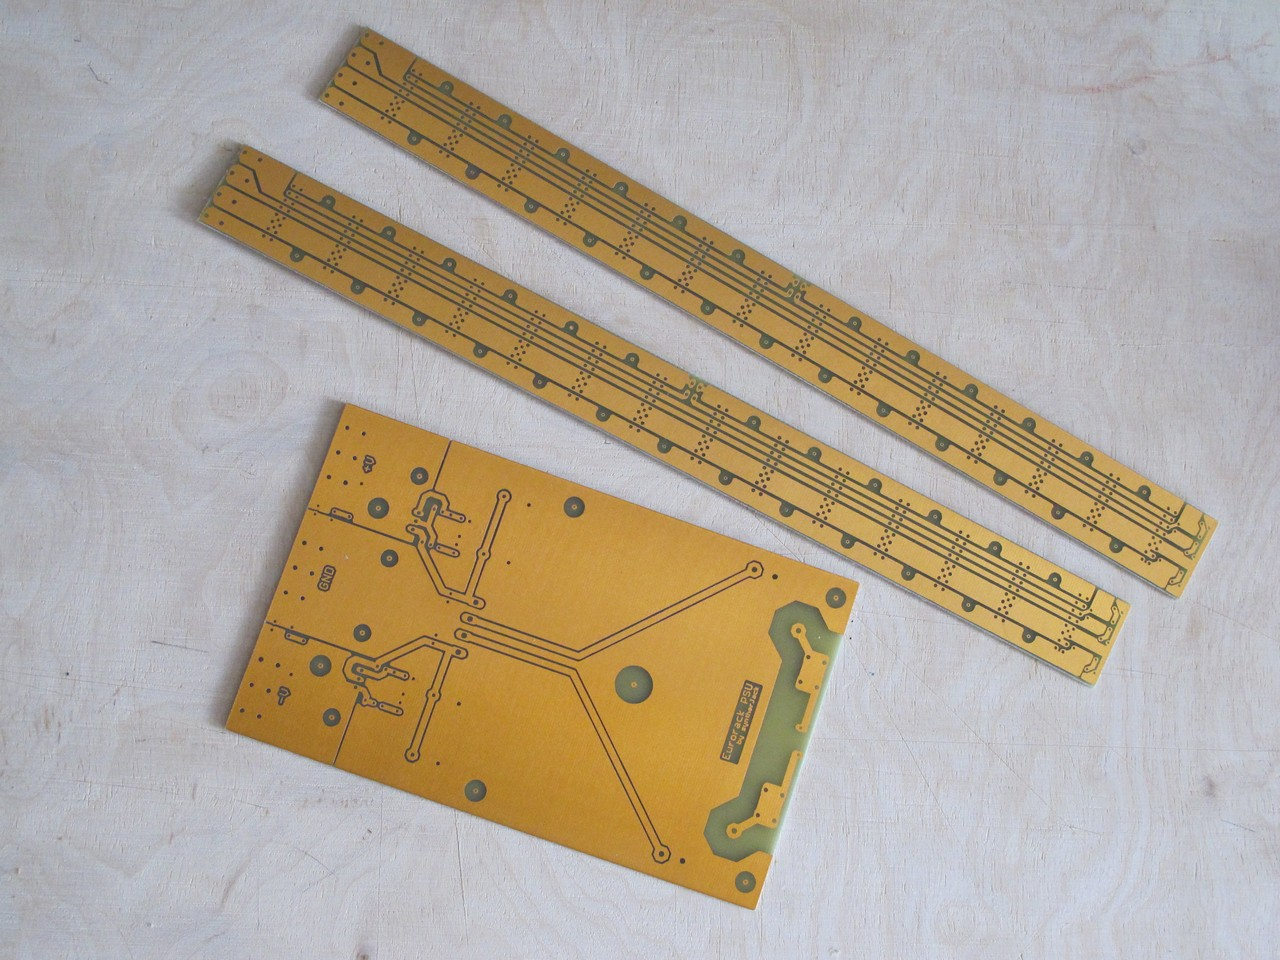 Modular PSU and busboards PCBs